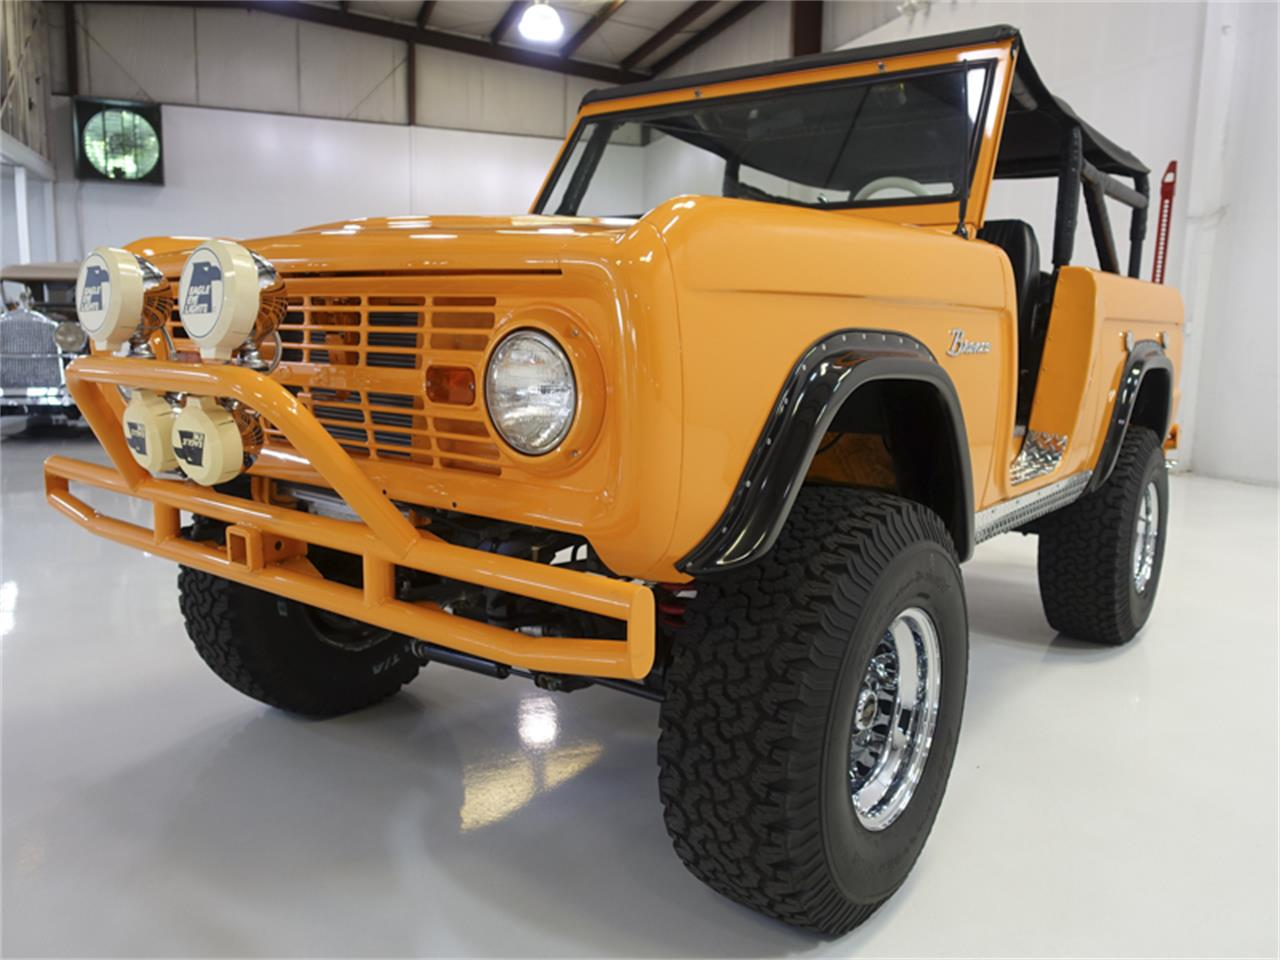 Large Picture of Classic '67 Bronco located in Missouri - $49,900.00 Offered by Daniel Schmitt & Co. - QIAT